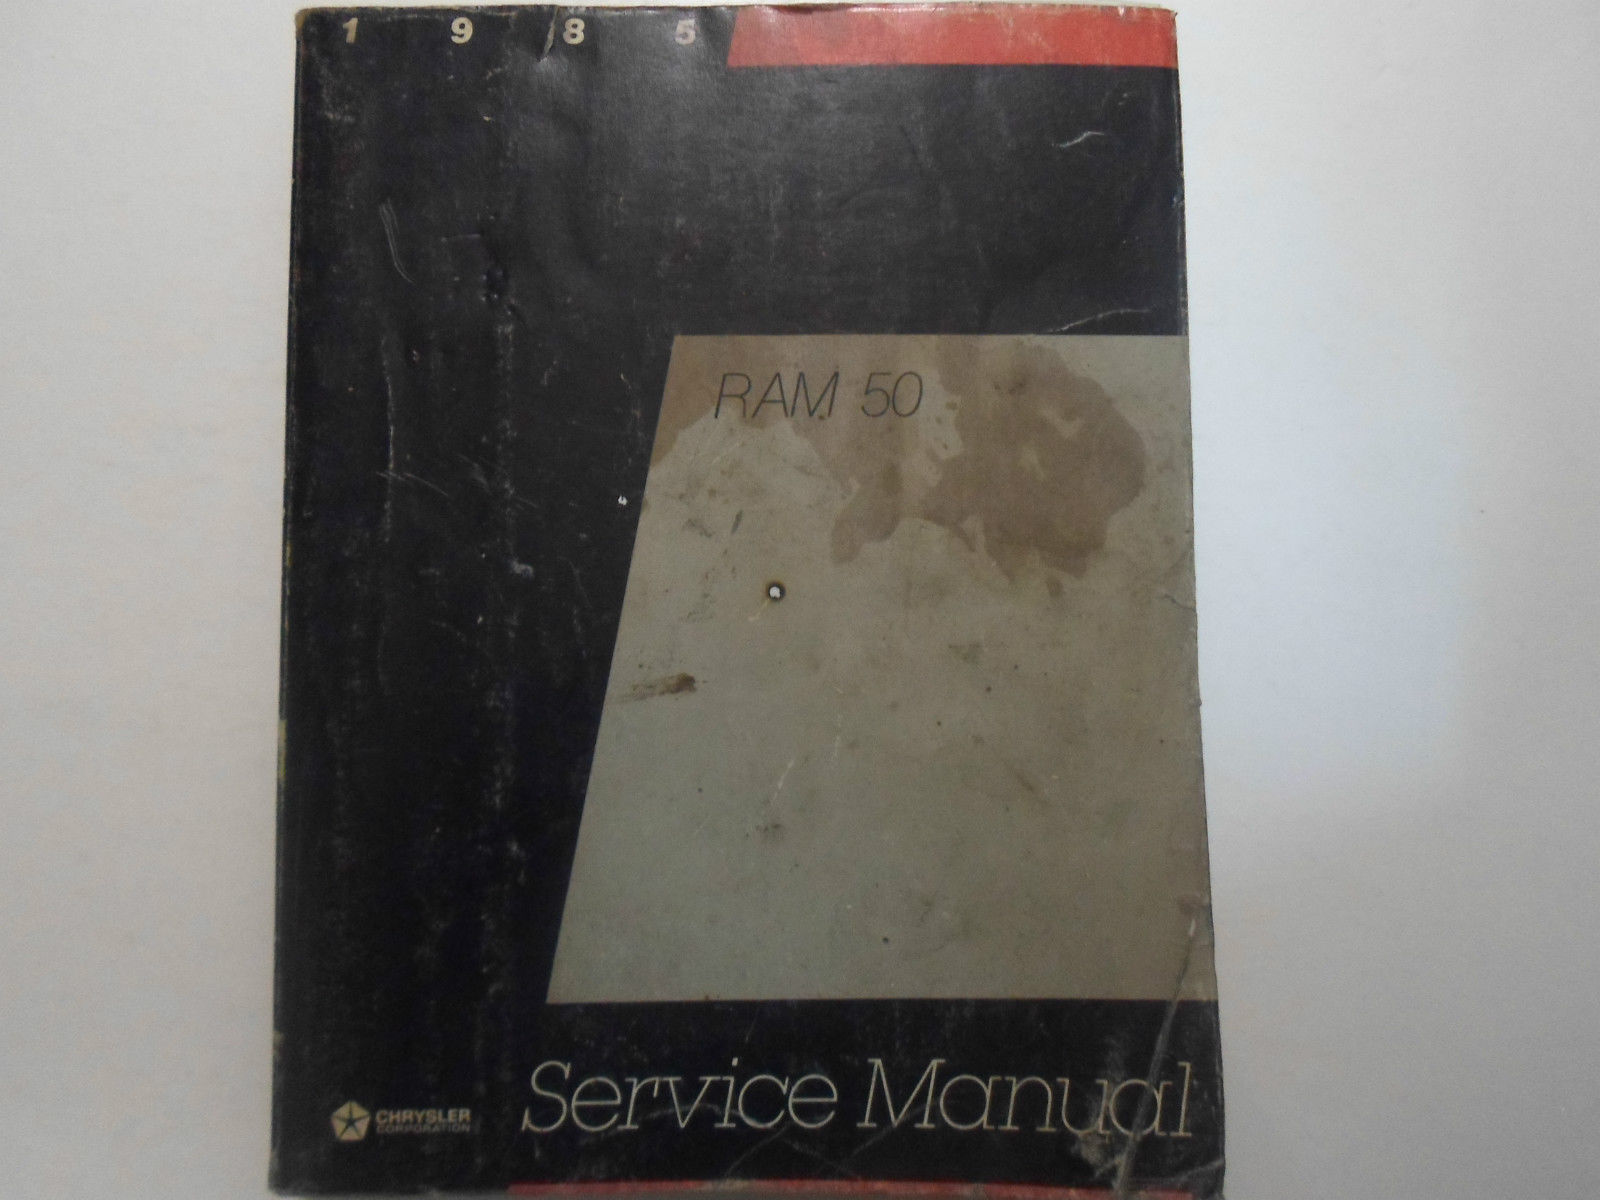 Primary image for 1985 Dodge Ram 50 Service Repair Shop Manual FACTORY OEM BOOK USED DAMAGE WEAR